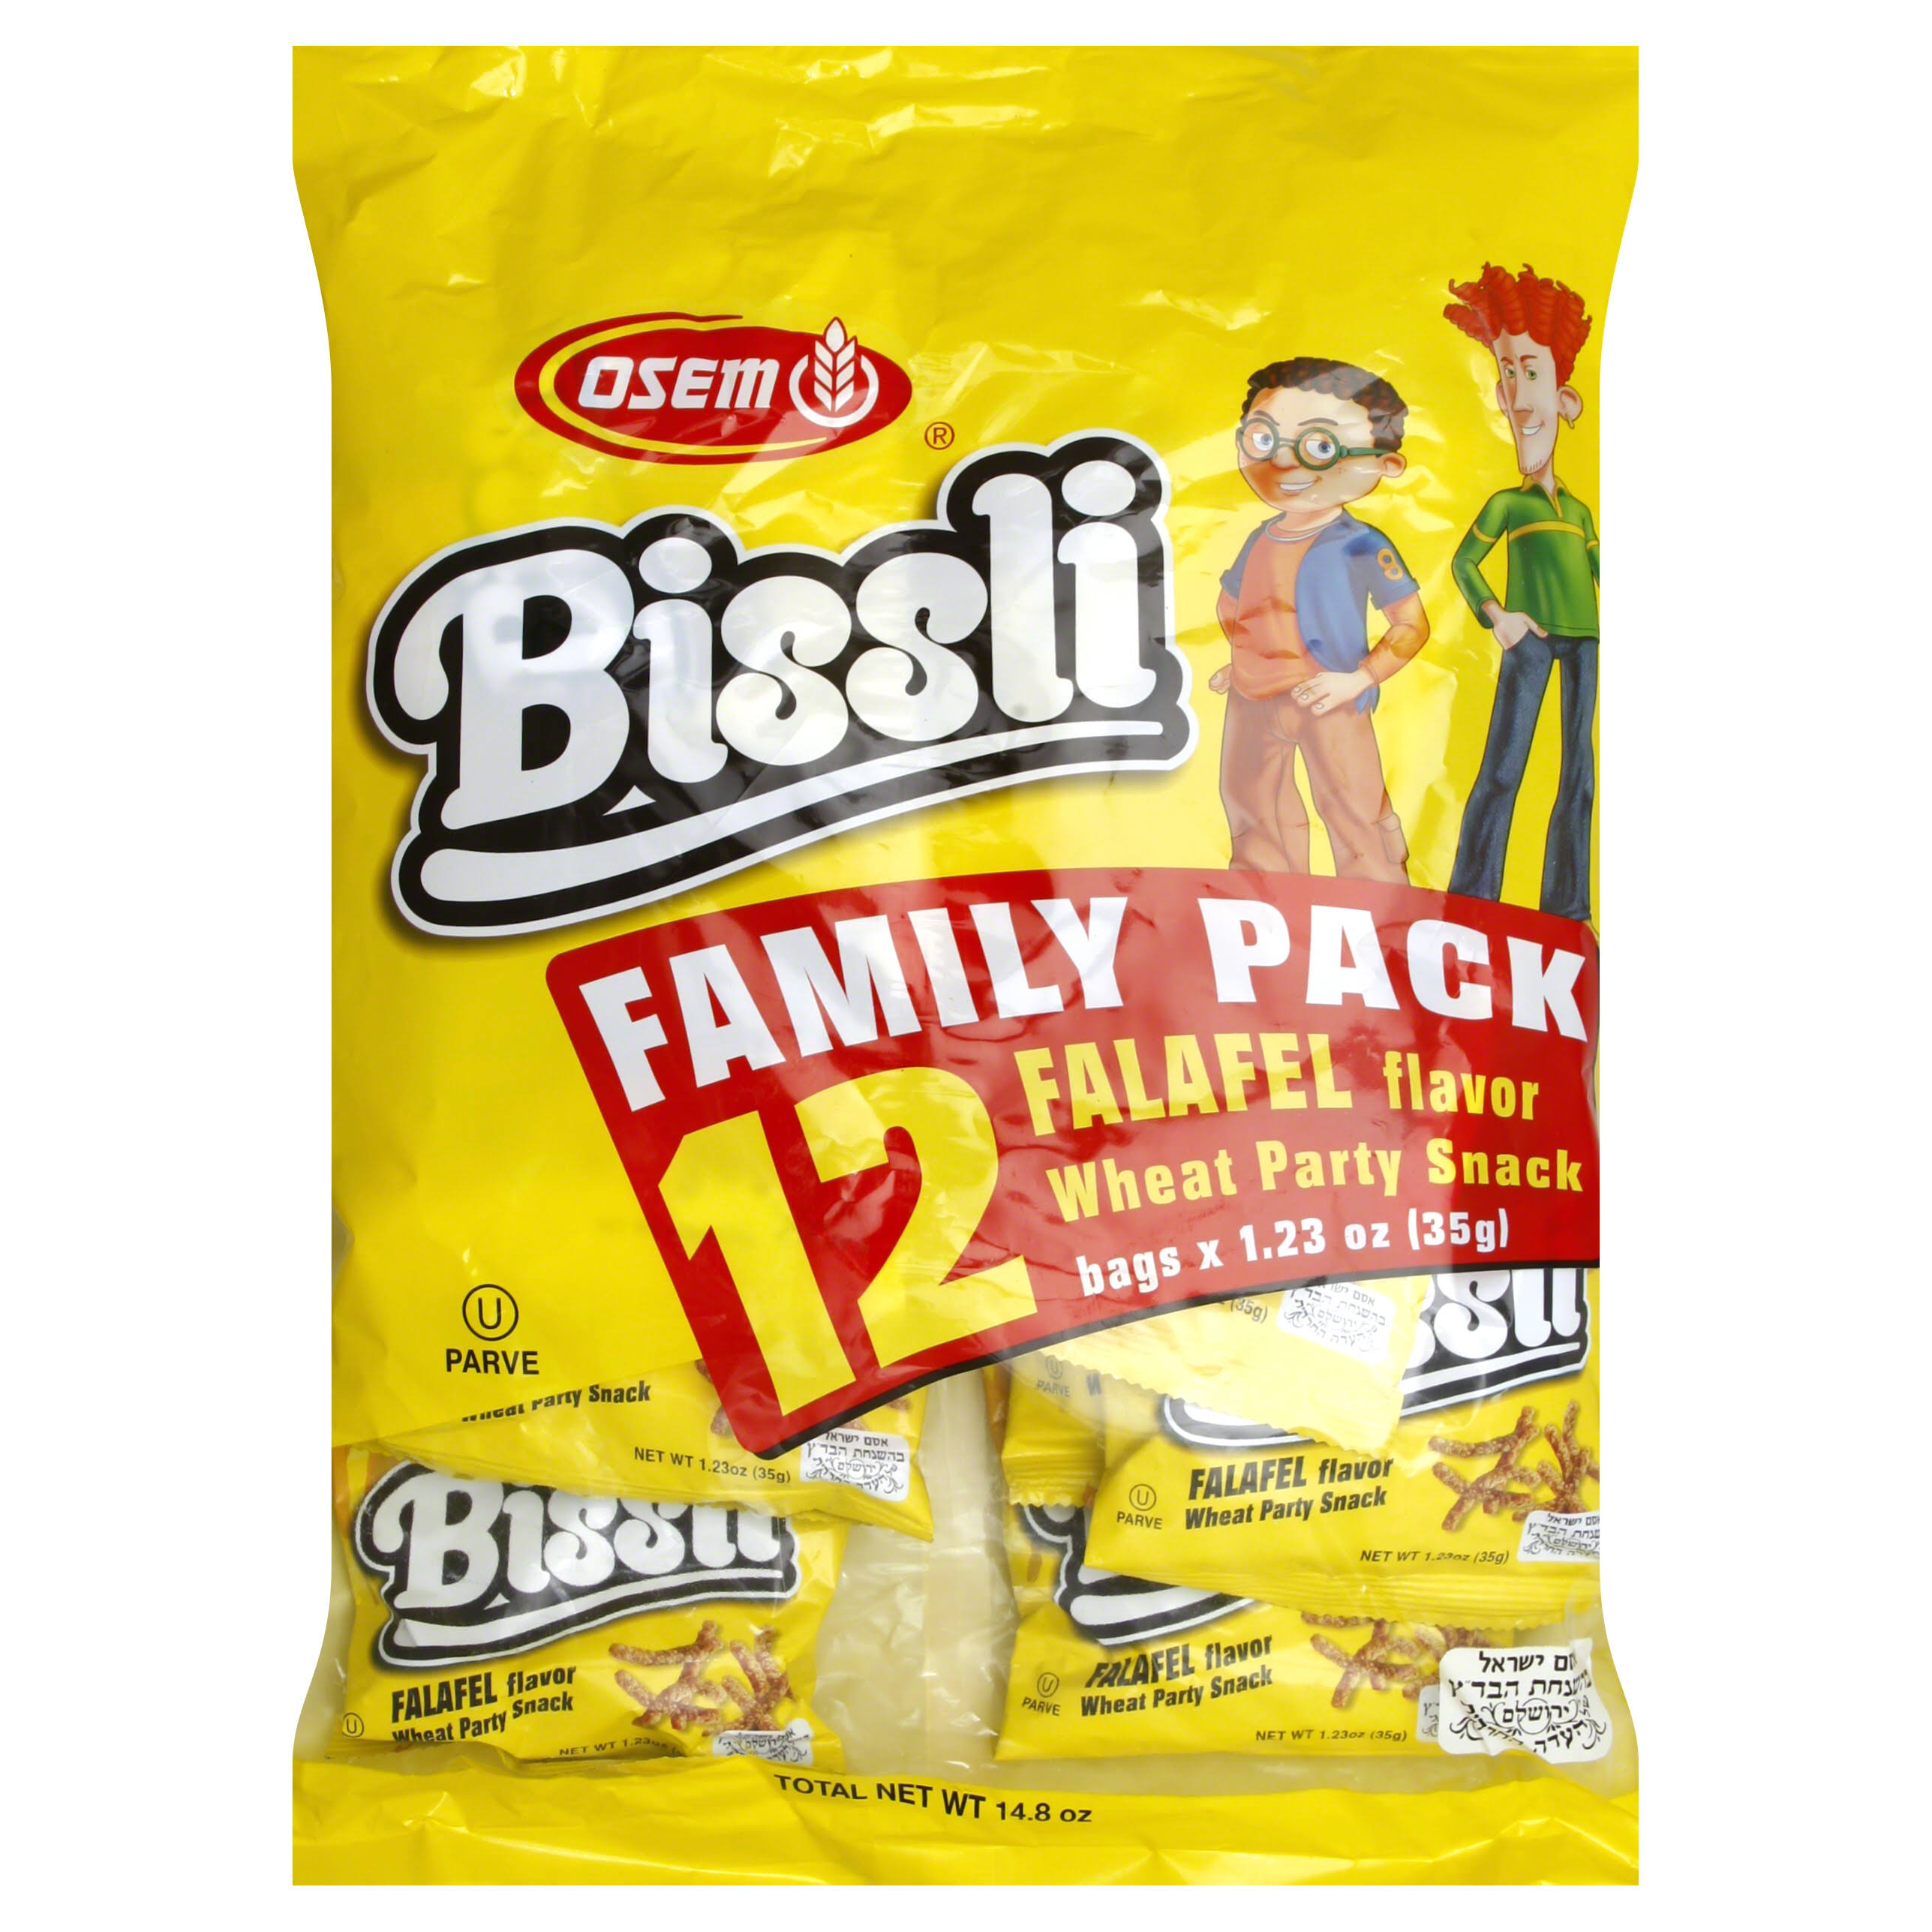 Osem Bissli Family Pack Falafel Flavoured Wheat Snack - 35g, 12pk